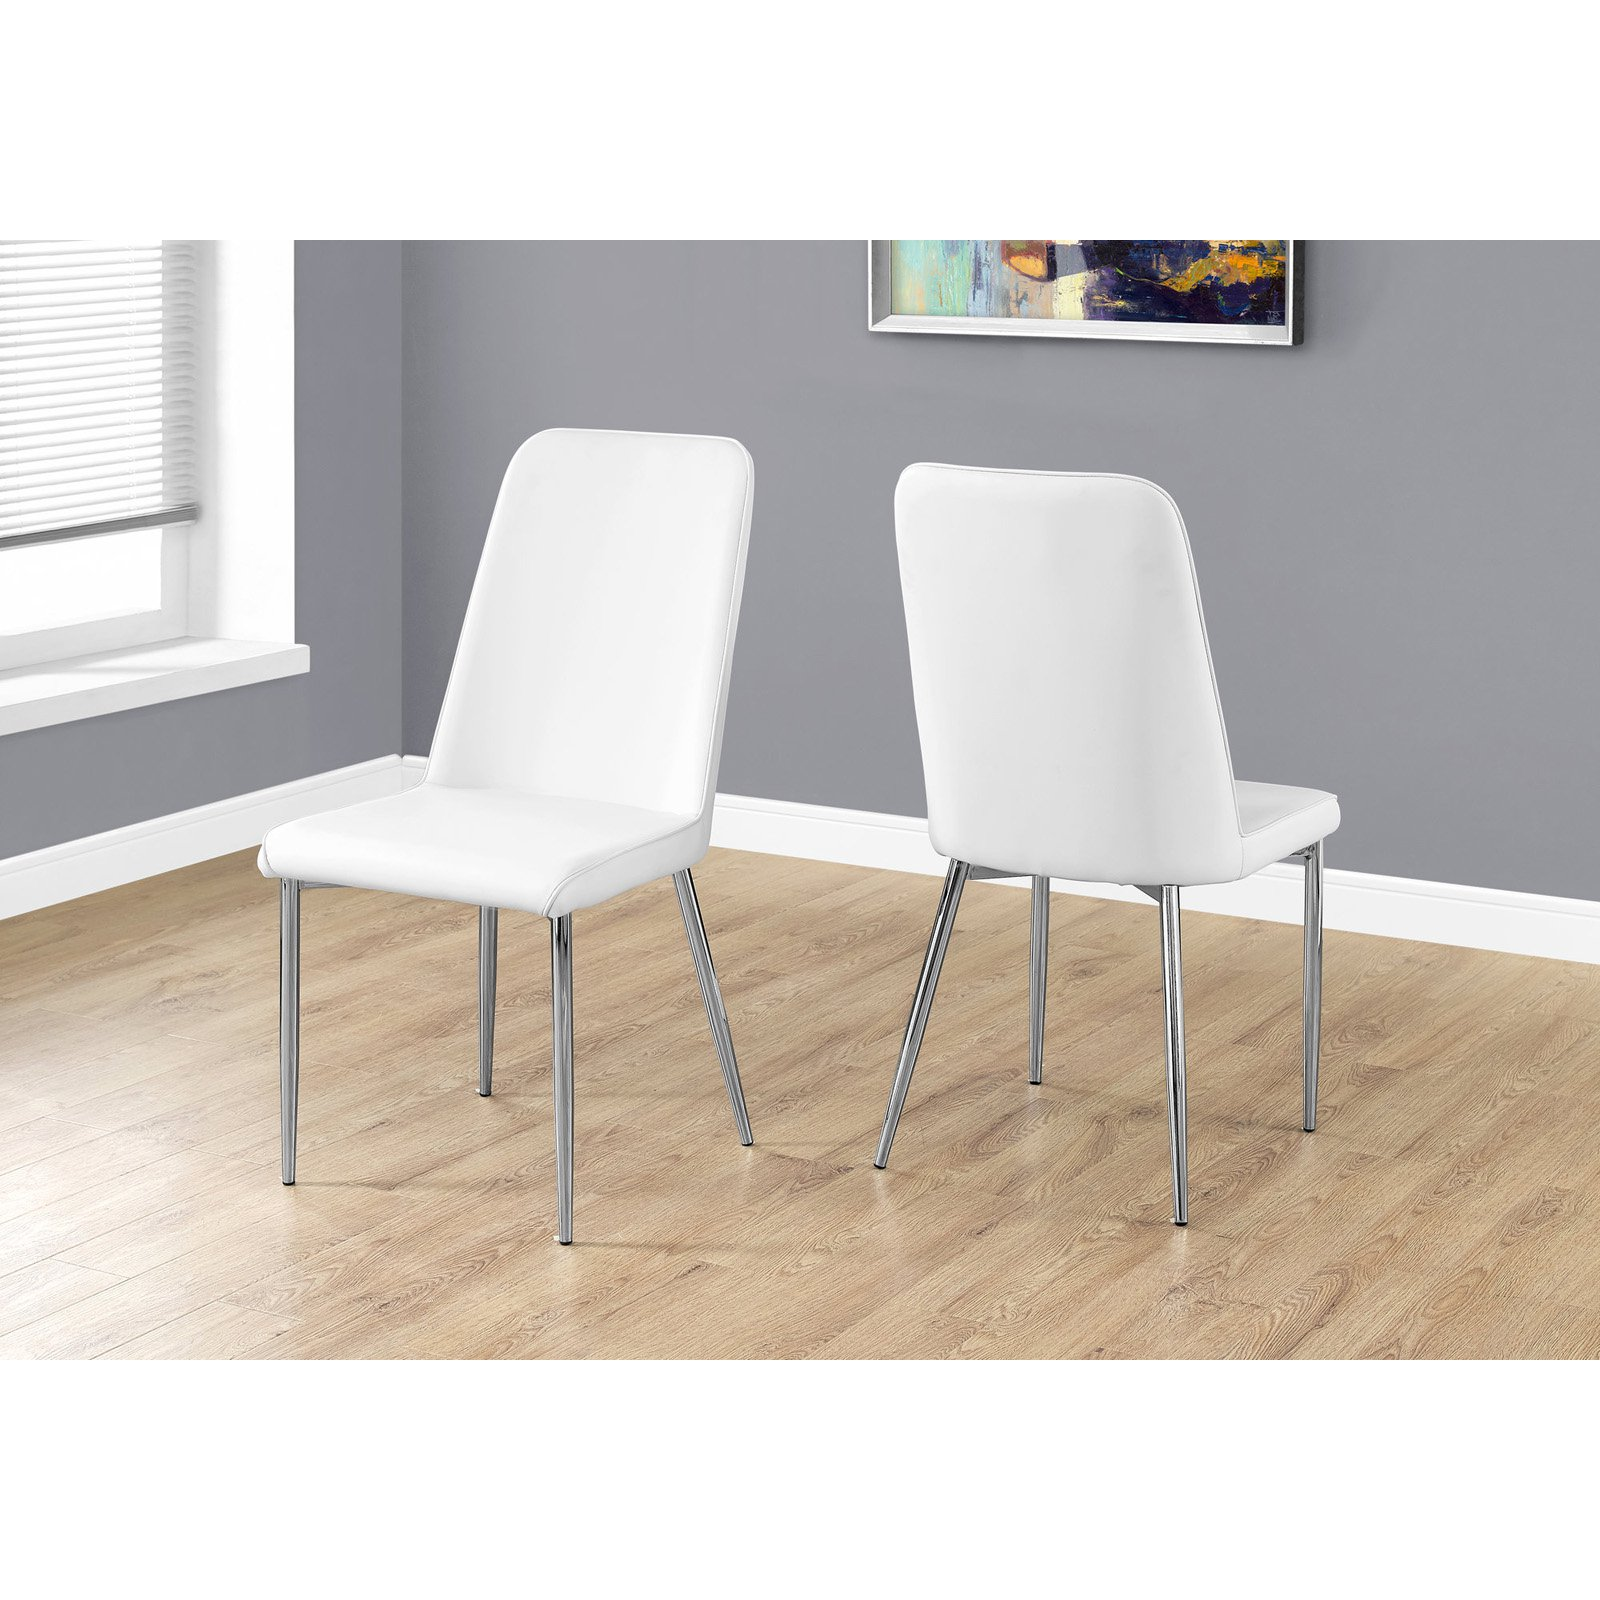 Monarch Specialties 37 In Faux Leather And Chrome Dining Chair Set Of 2 White